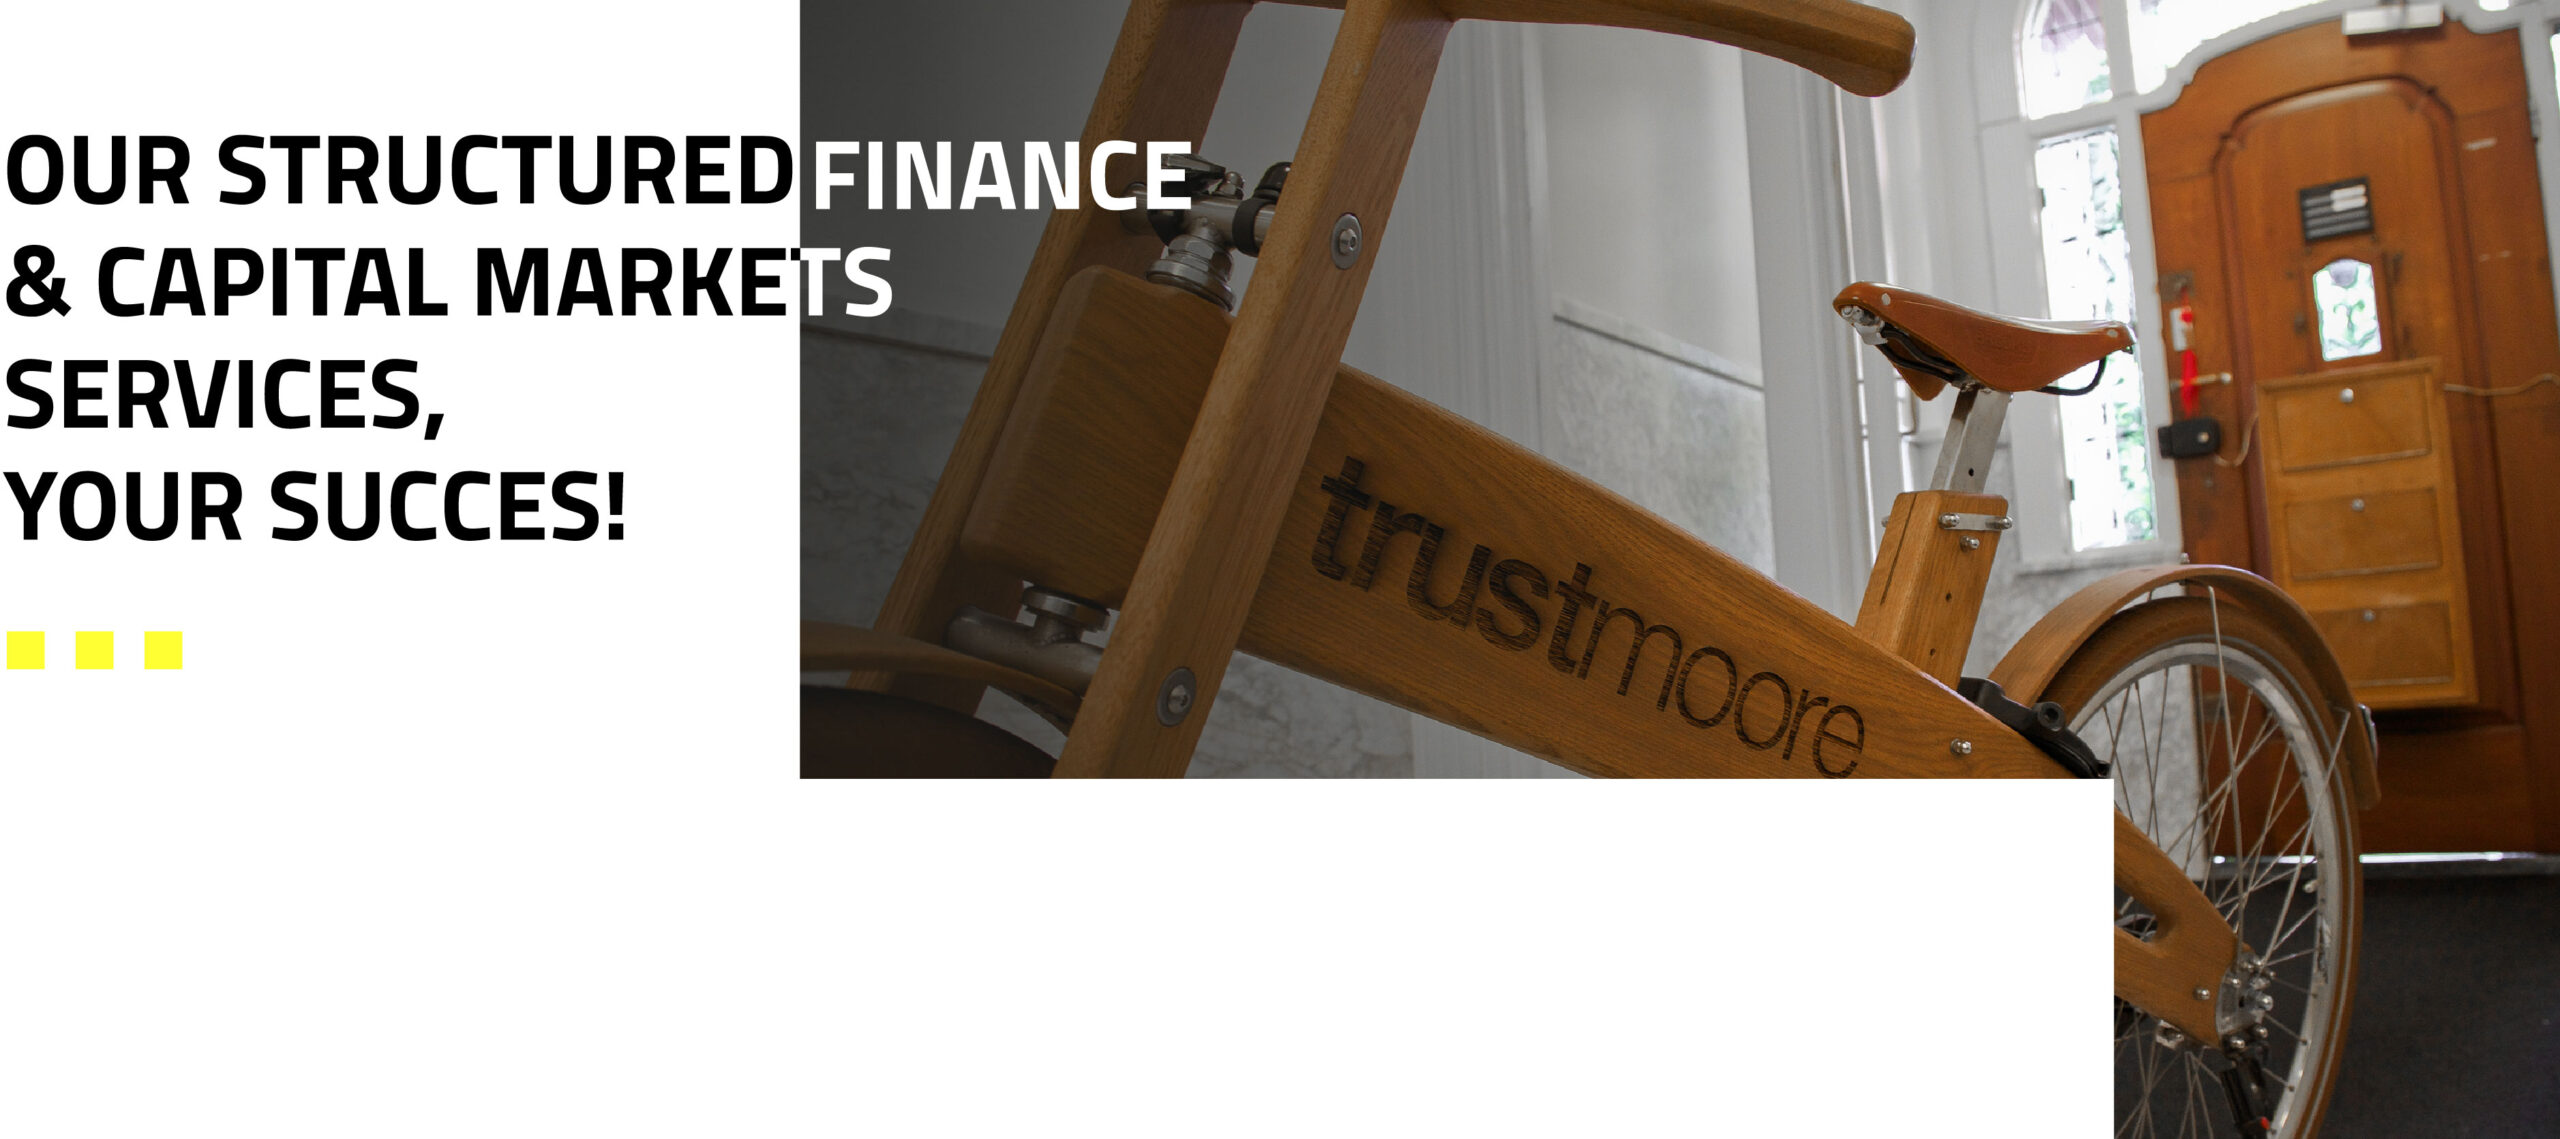 Structured Finance & Capital Markets